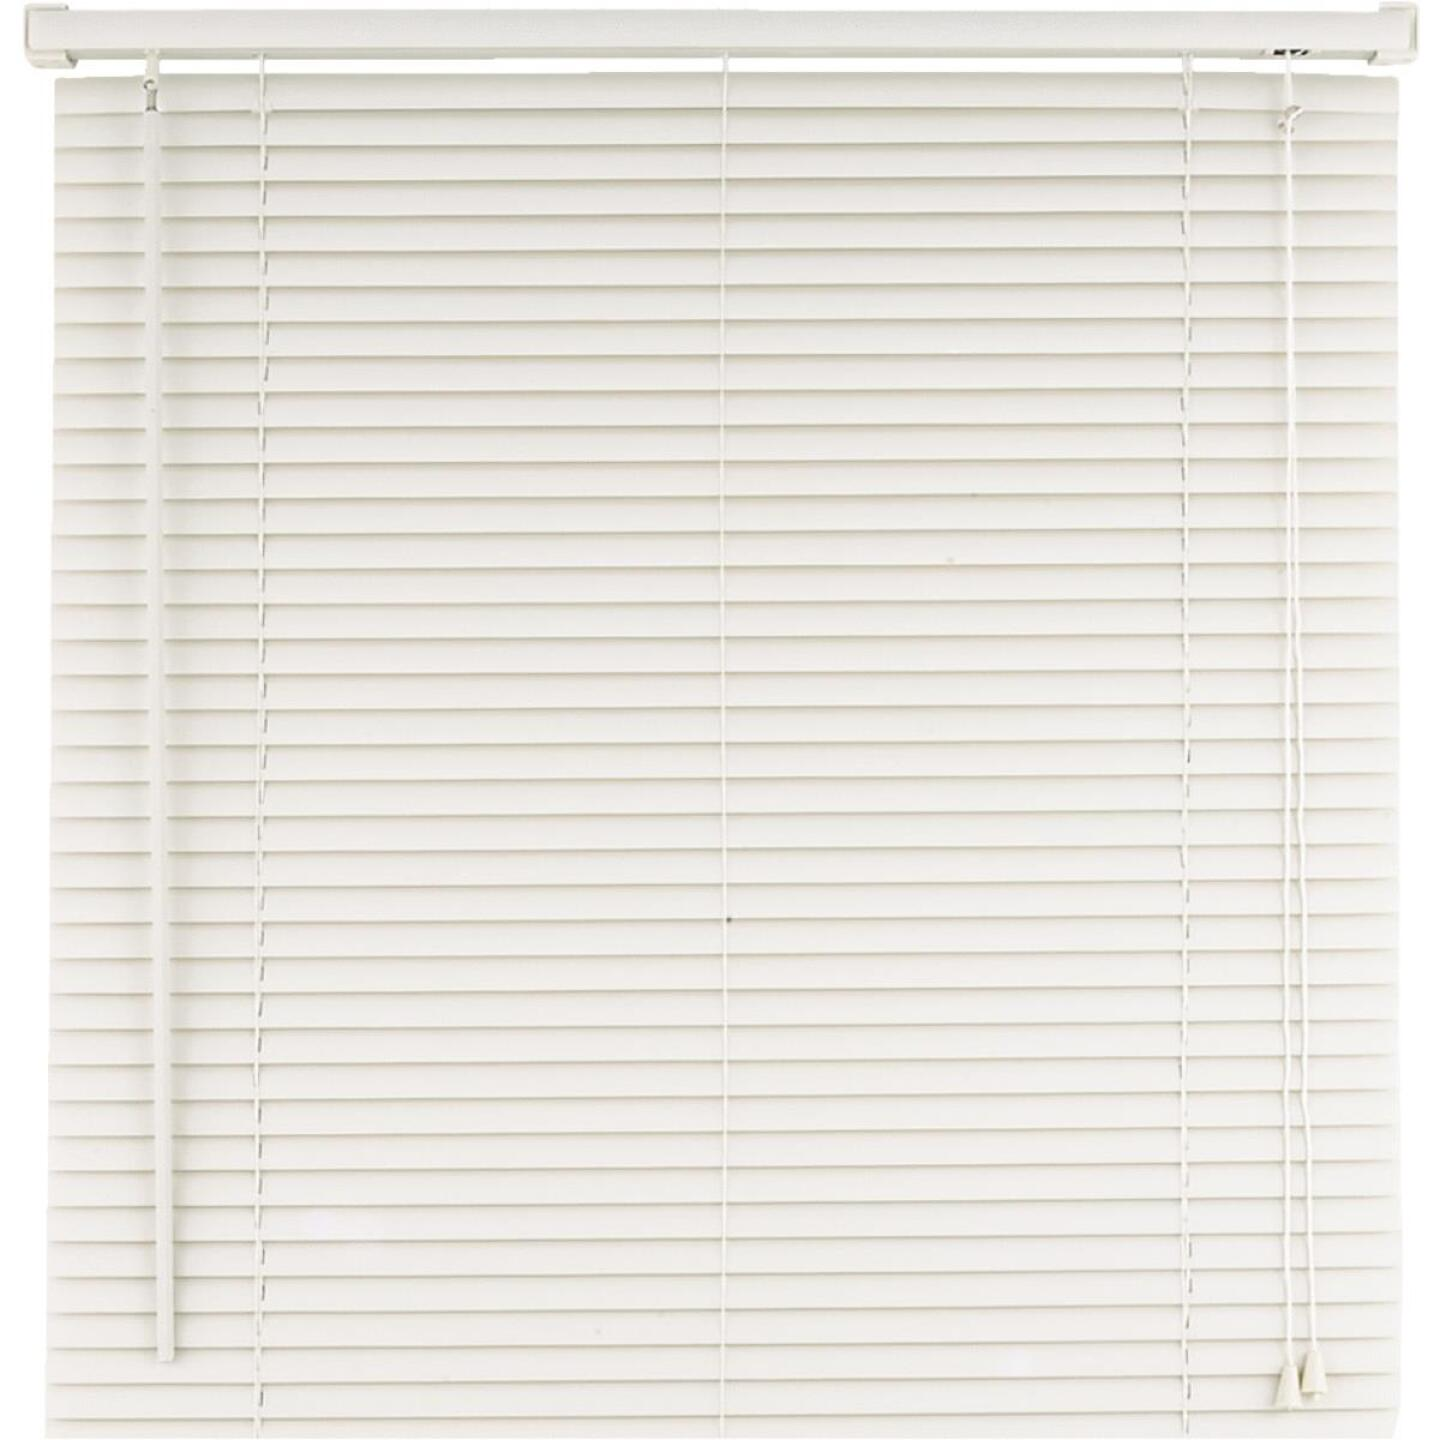 Home Impressions 60 In. x 64 In. White Vinyl Light Filtering Corded Mini-Blinds Image 1